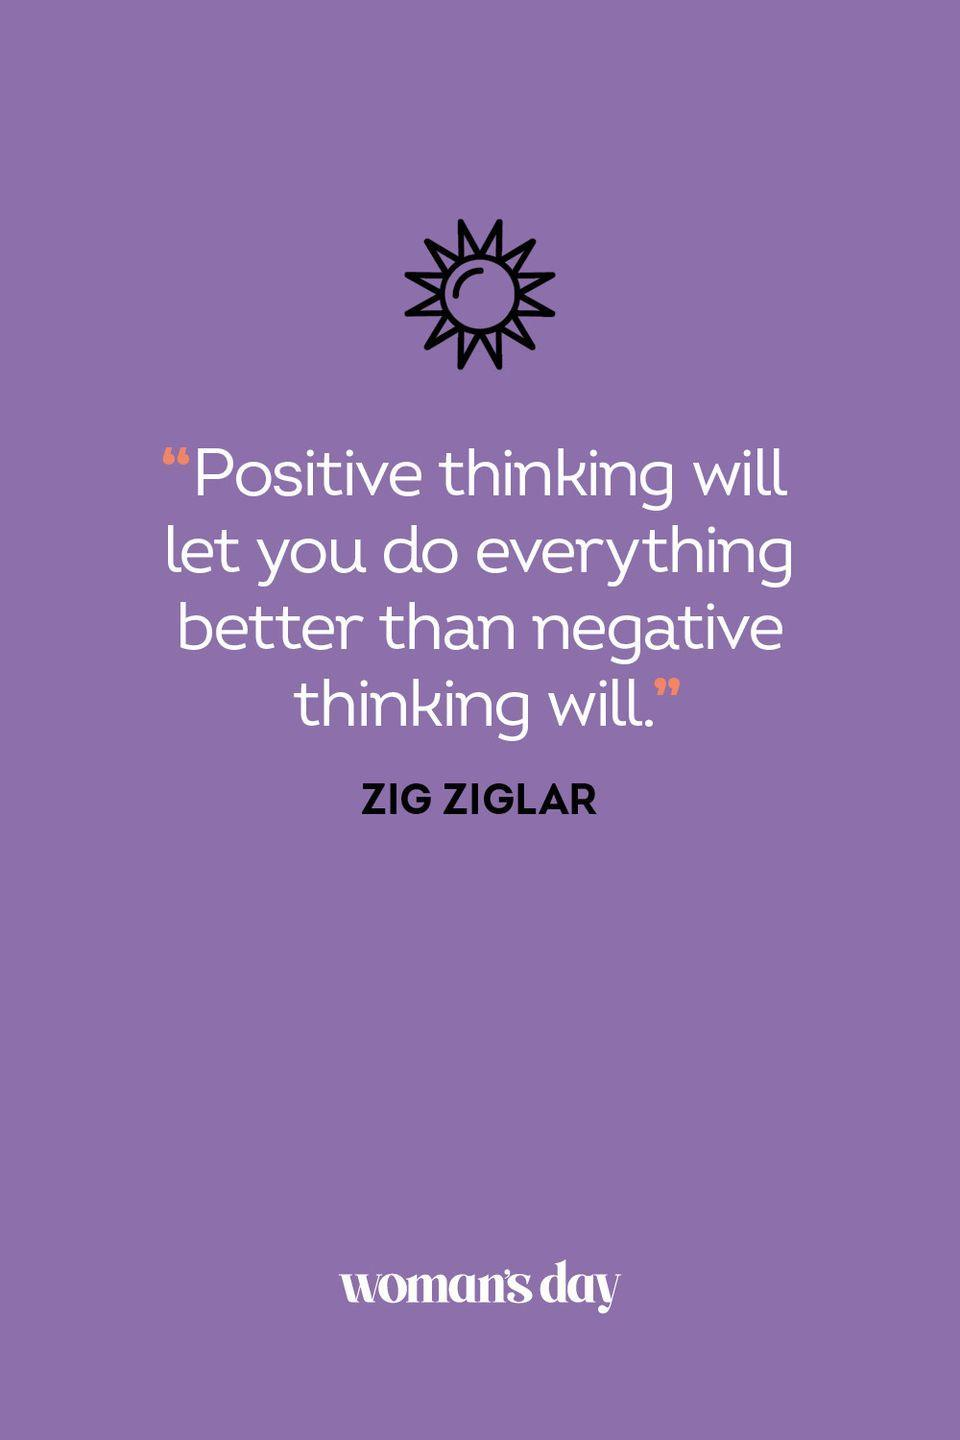 <p>Positive thinking will let you do everything better than negative thinking will.</p>